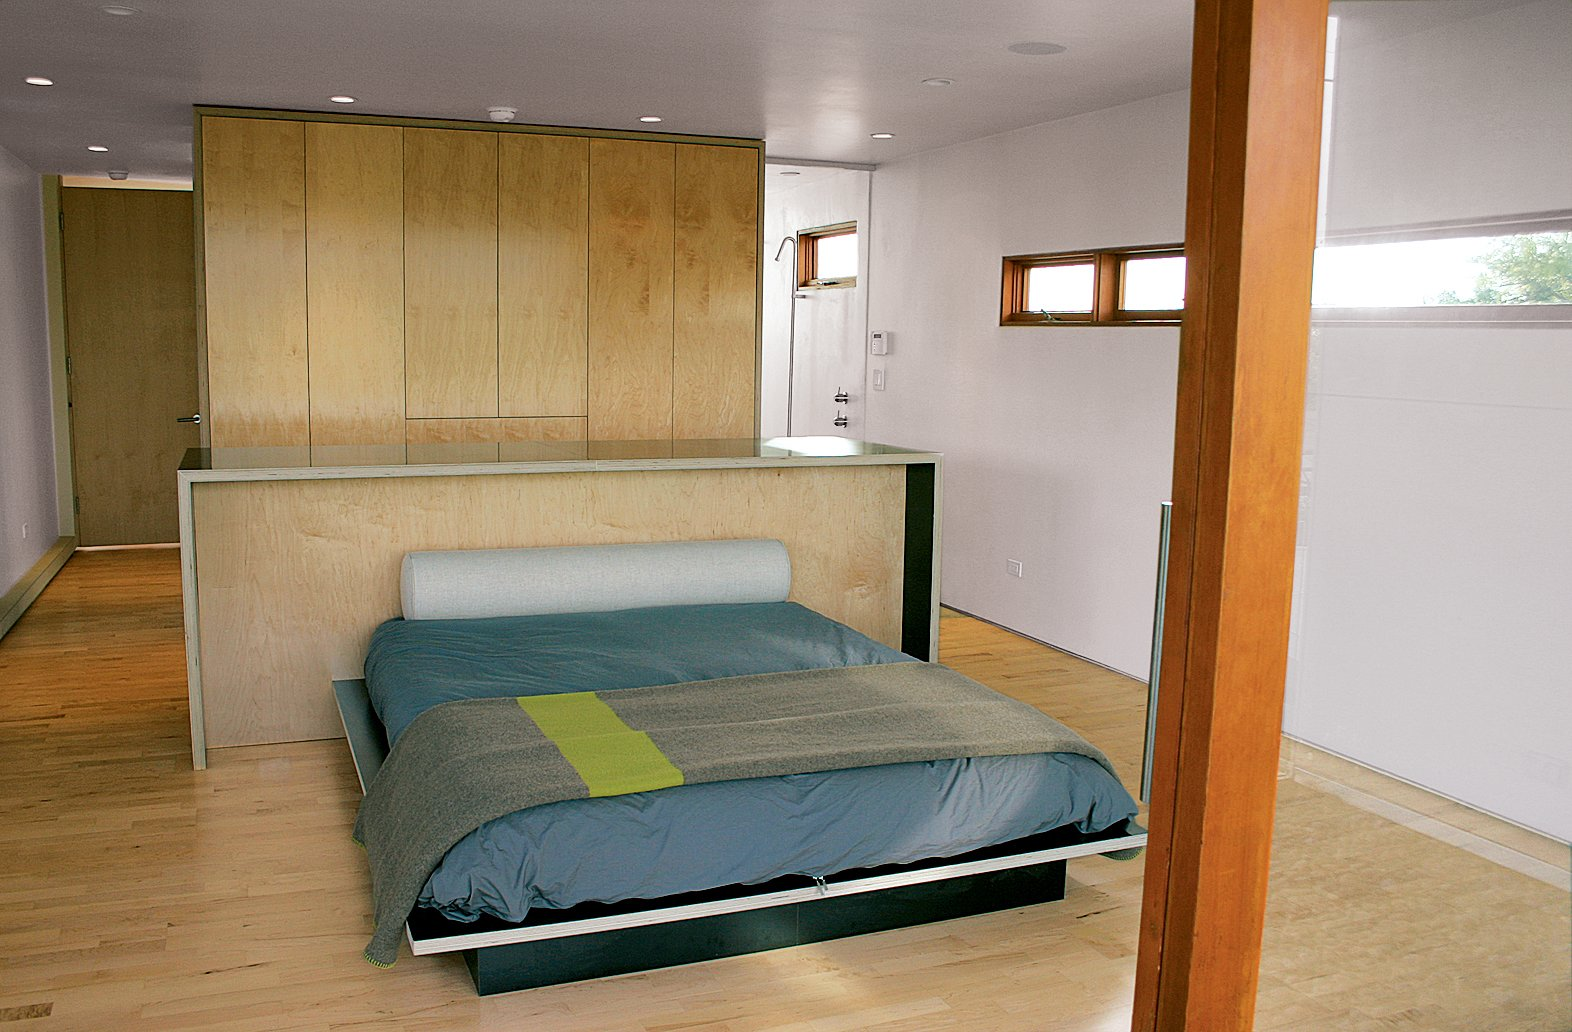 Bedroom, Bed, Recessed Lighting, Wardrobe, and Light Hardwood Floor The simplicity of the design is complemented by the unfussy use of materials, including the exposed edges of the bedroom furniture and paint-free drywall.  Photo 4 of 5 in Building Green in Santa Monica